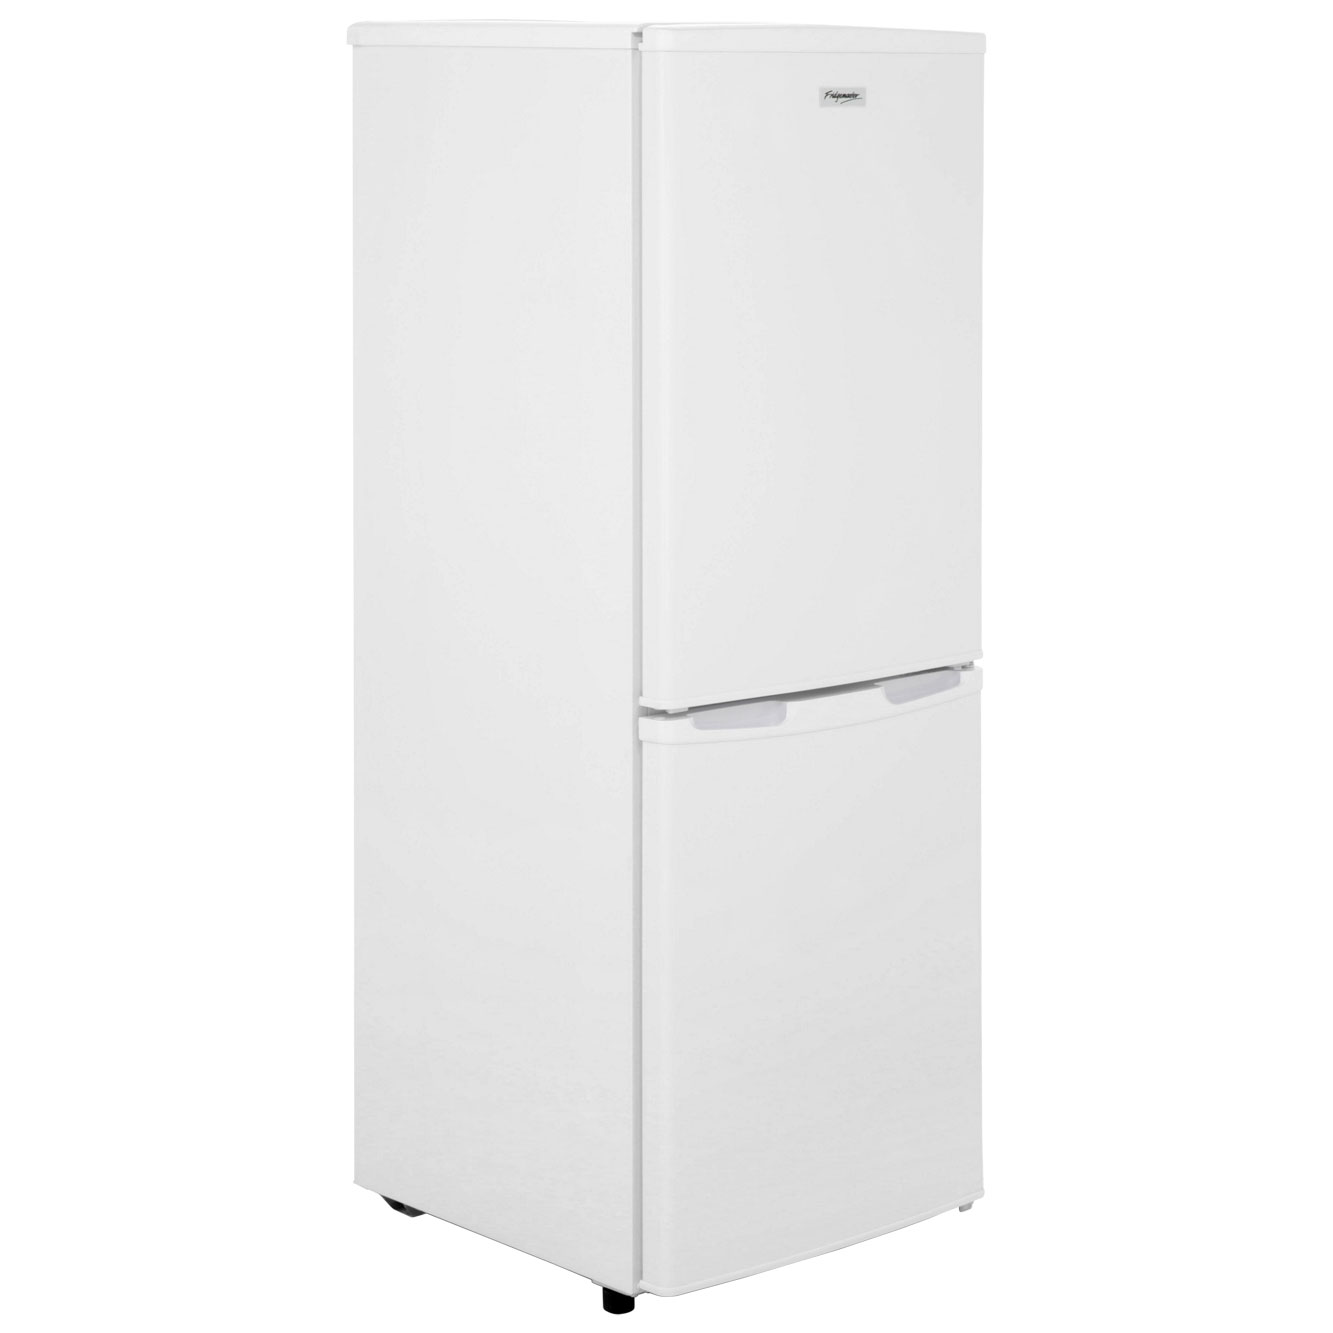 Fridgemaster MC50160 Free Standing Fridge Freezer in White